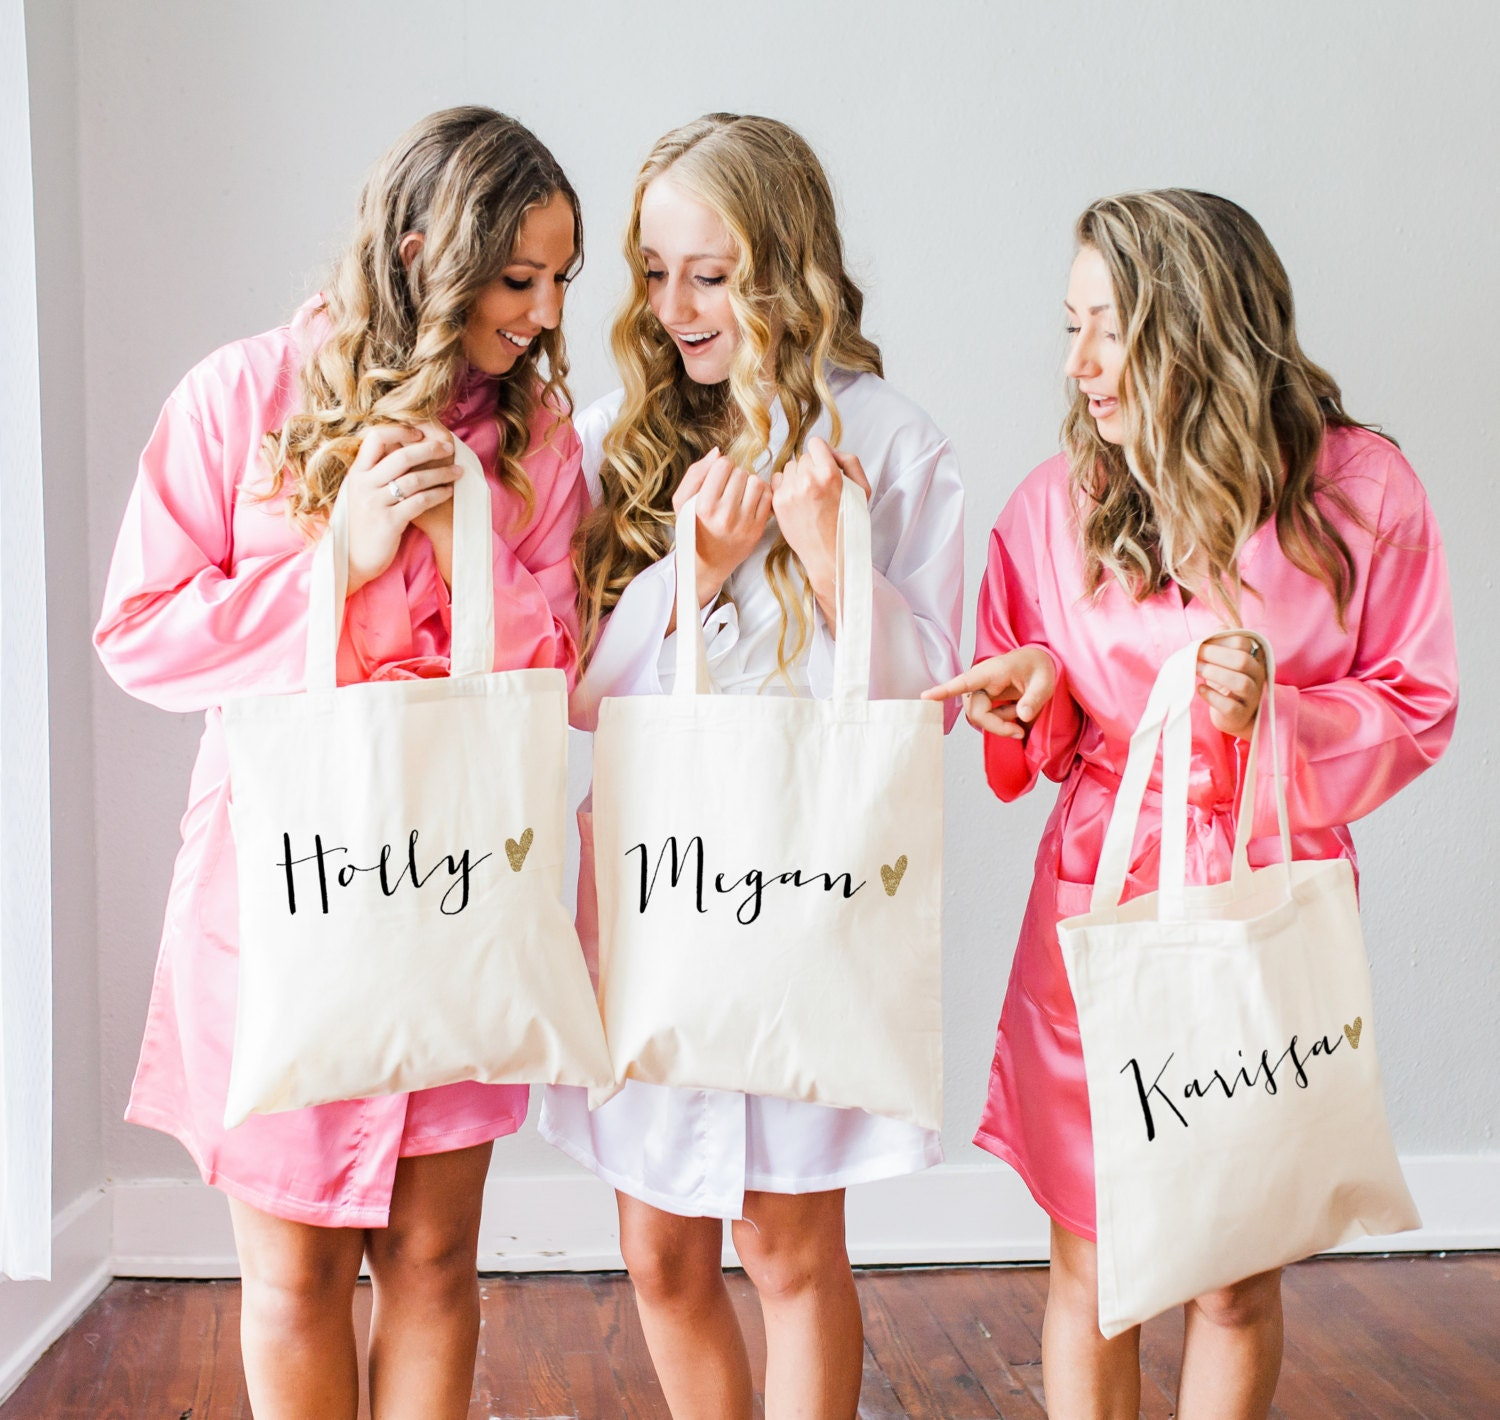 Wedding Gifts From Bridesmaid: Personalized Bag Gift For Bridesmaids Name Tote Bags Canvas